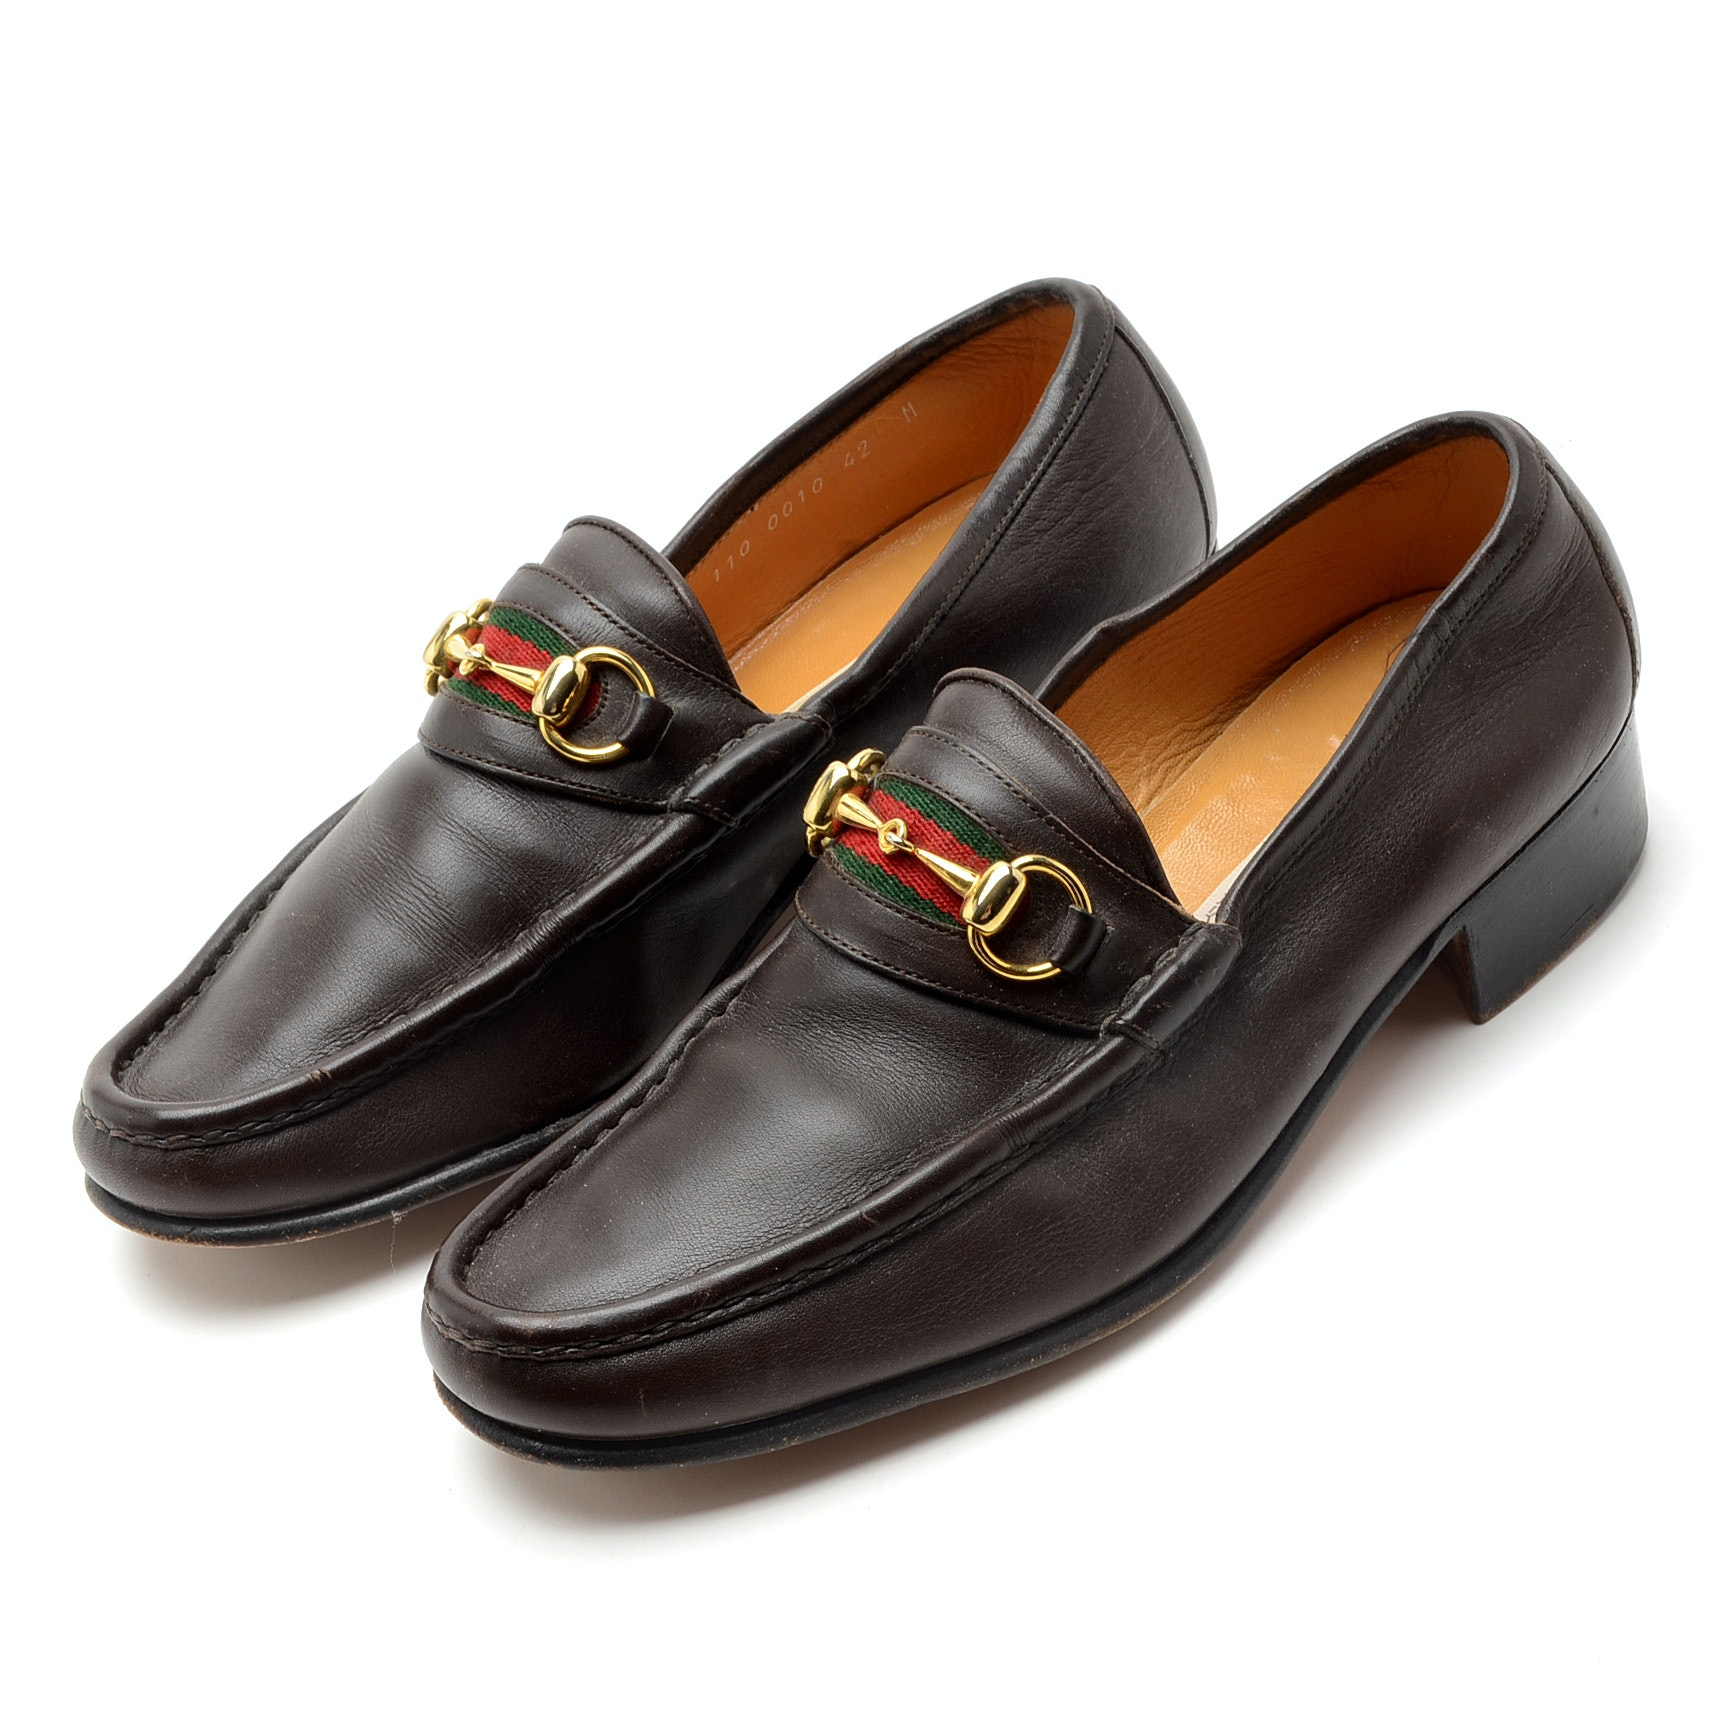 Men's Vintage Gucci Brown Leather Loafers with Green and Red Stripe Detailing